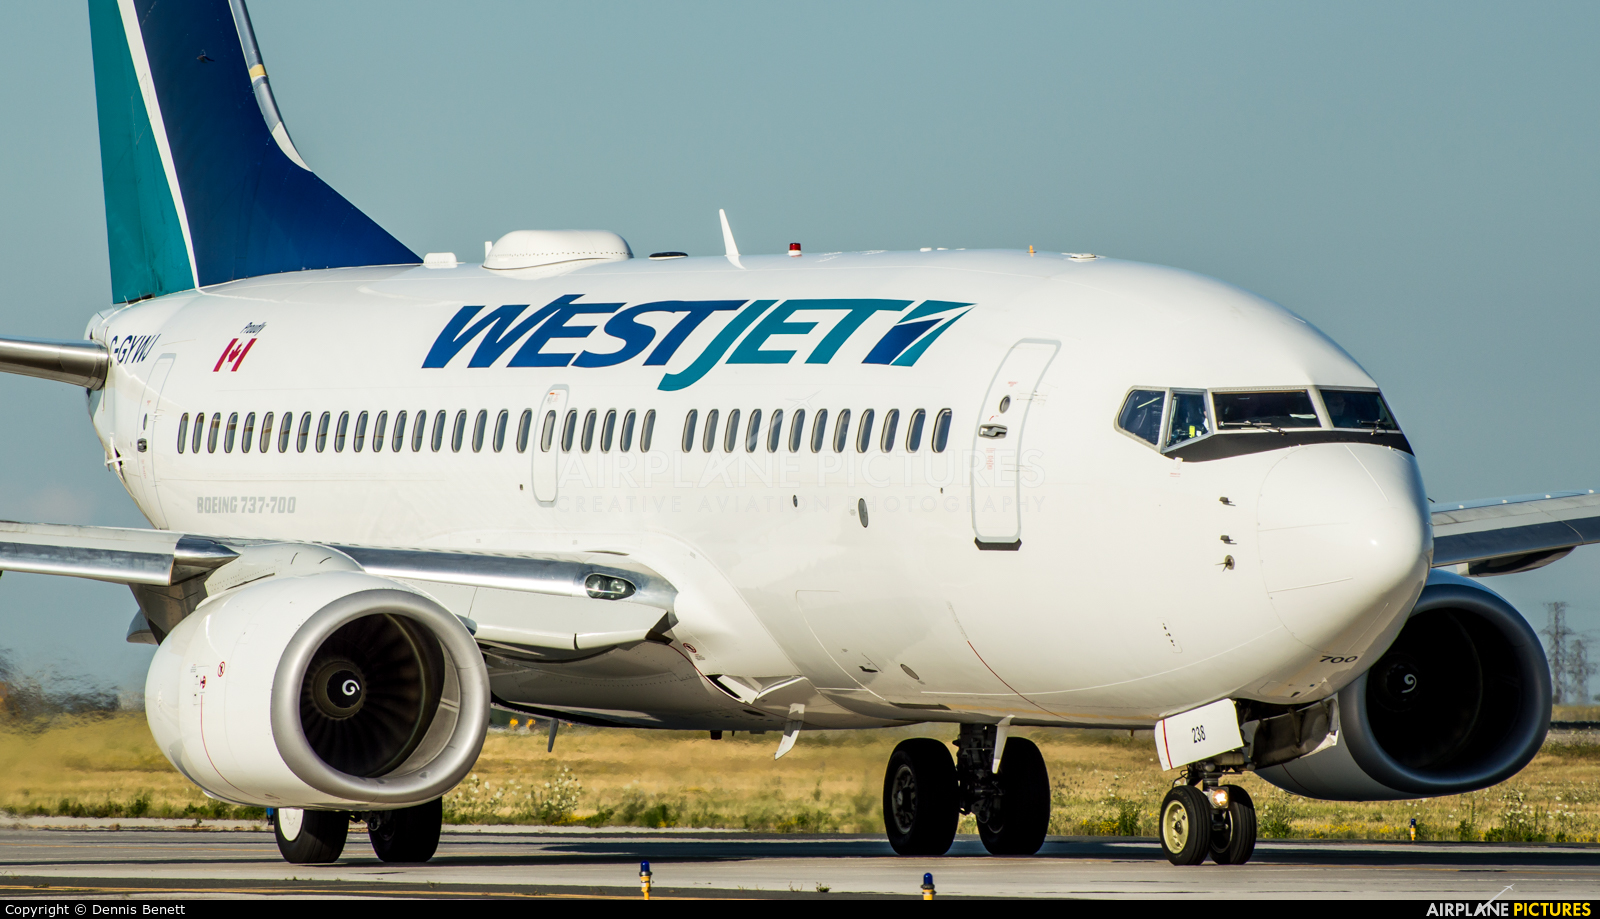 WestJet Airlines C-GYWJ aircraft at Toronto - Pearson Intl, ON